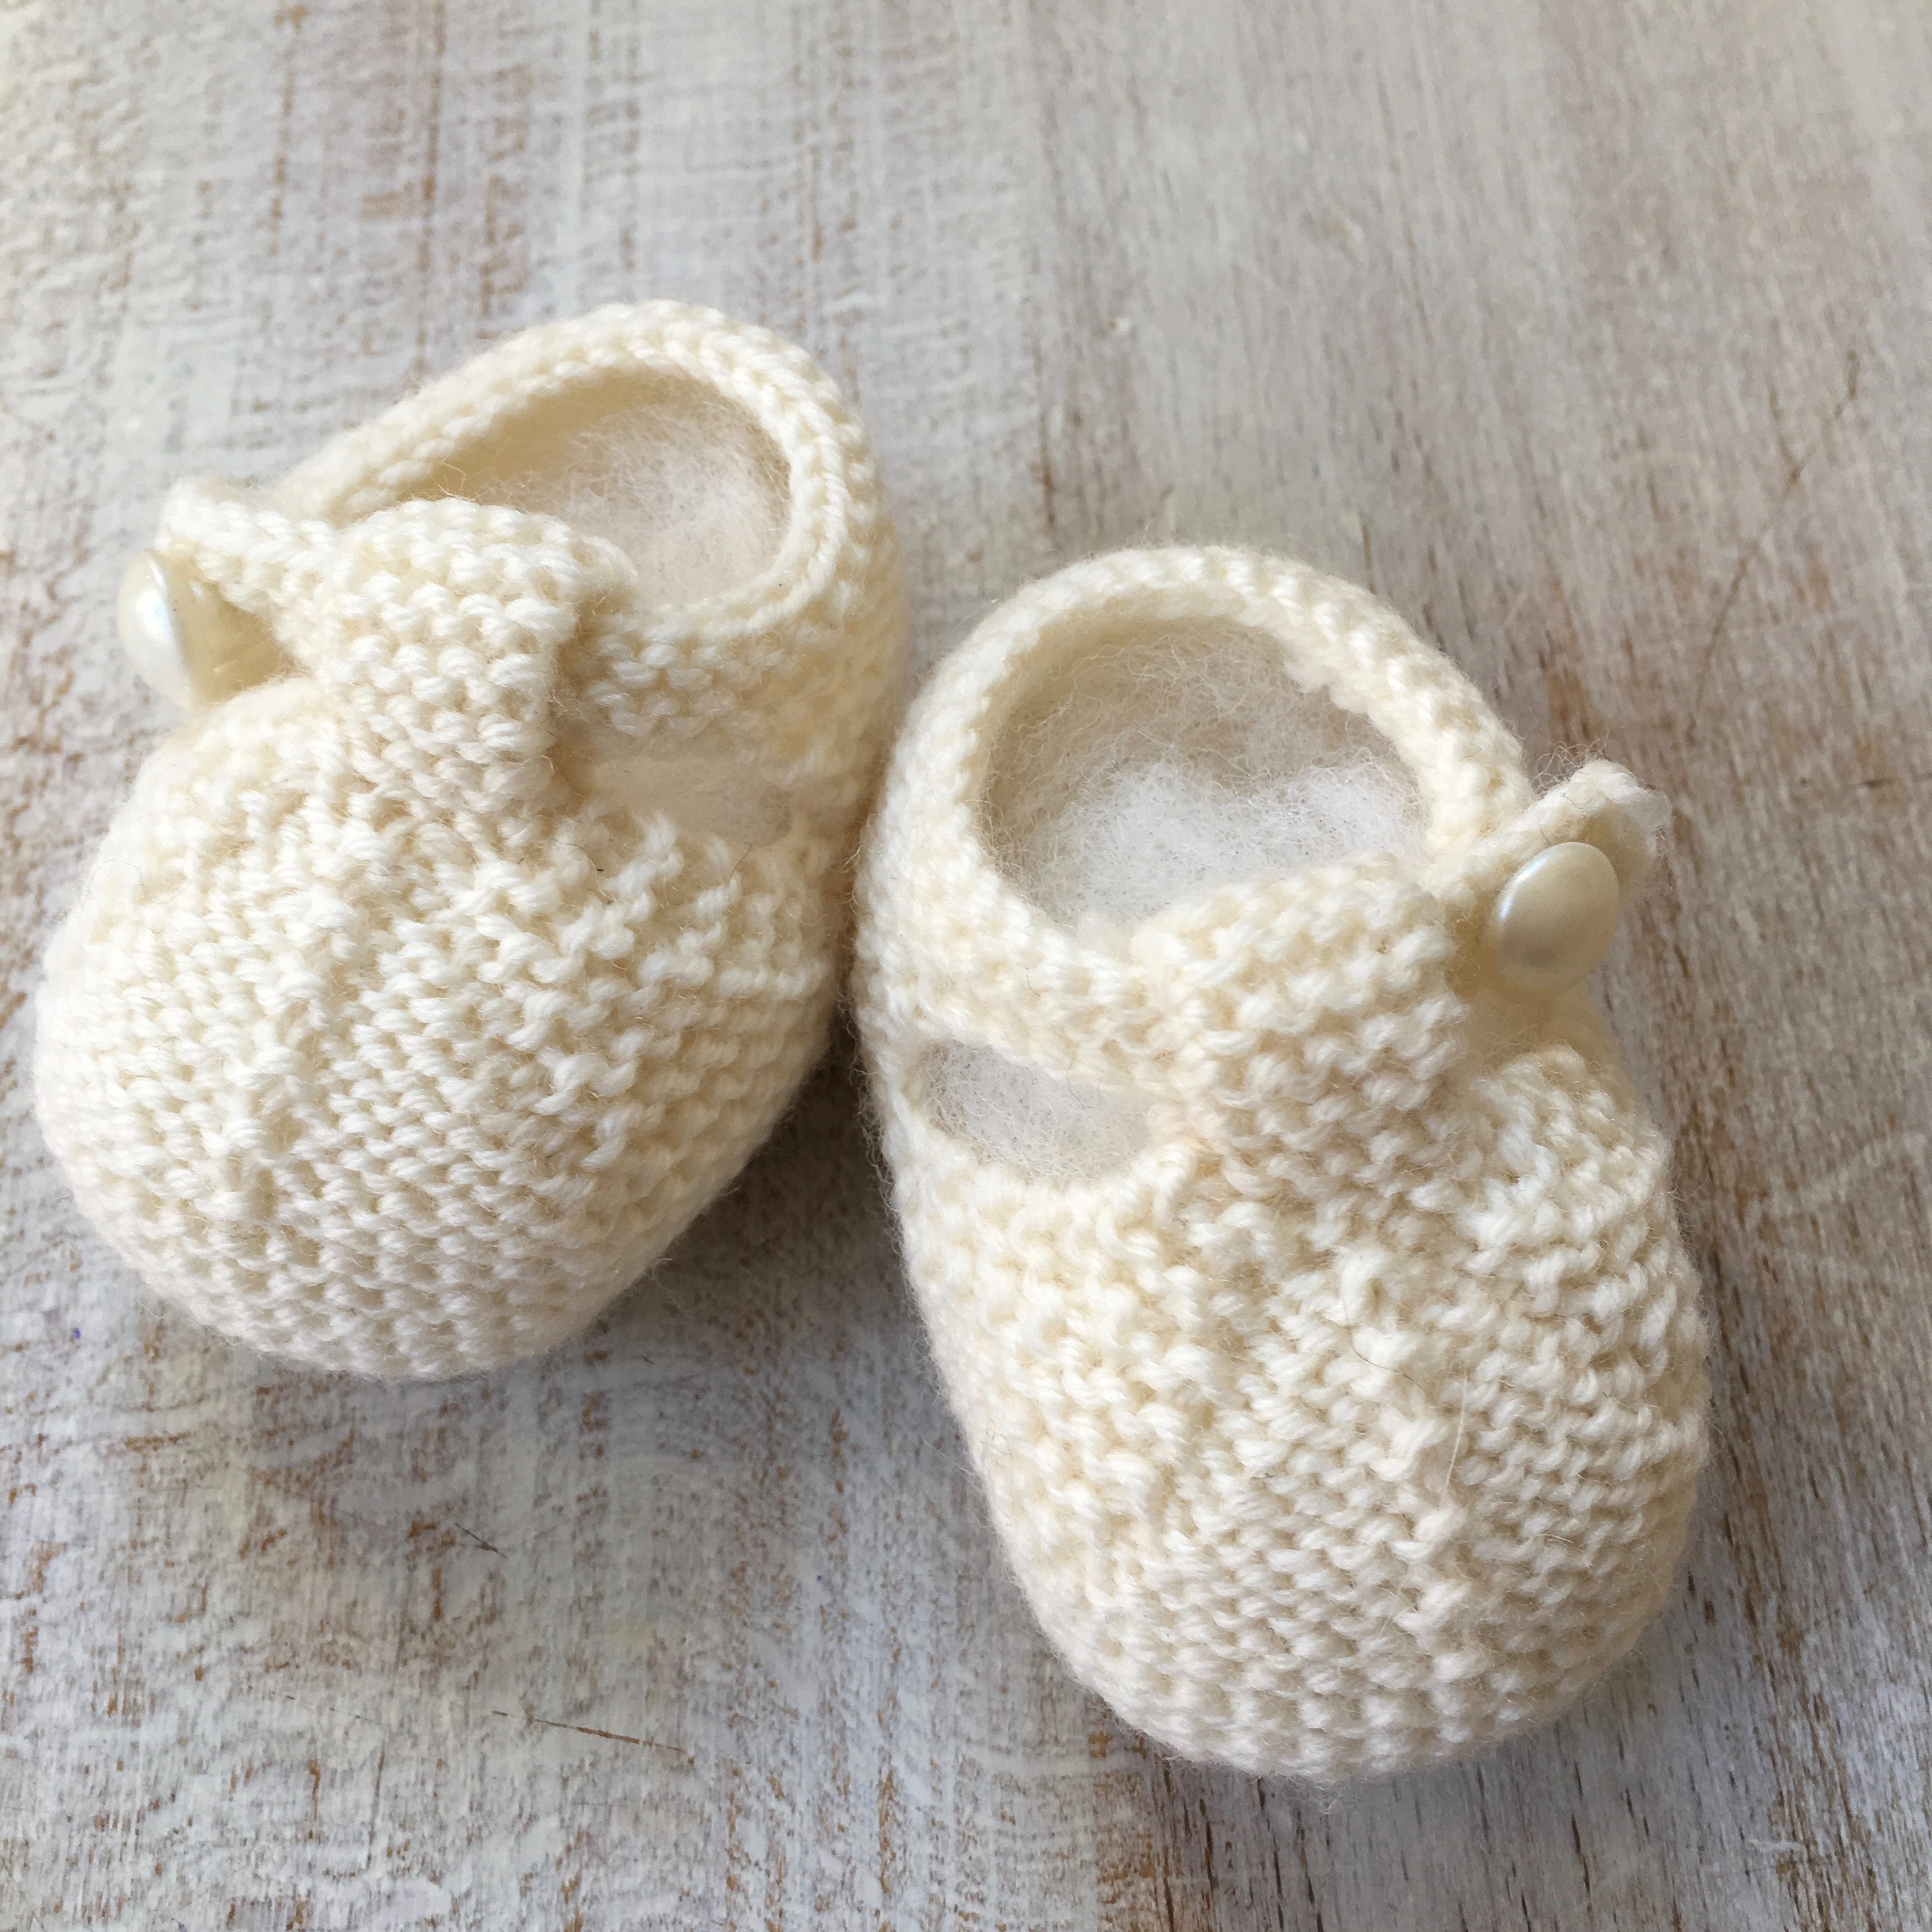 Baby Booties knitting project by Florence Merlin LoveKnitting